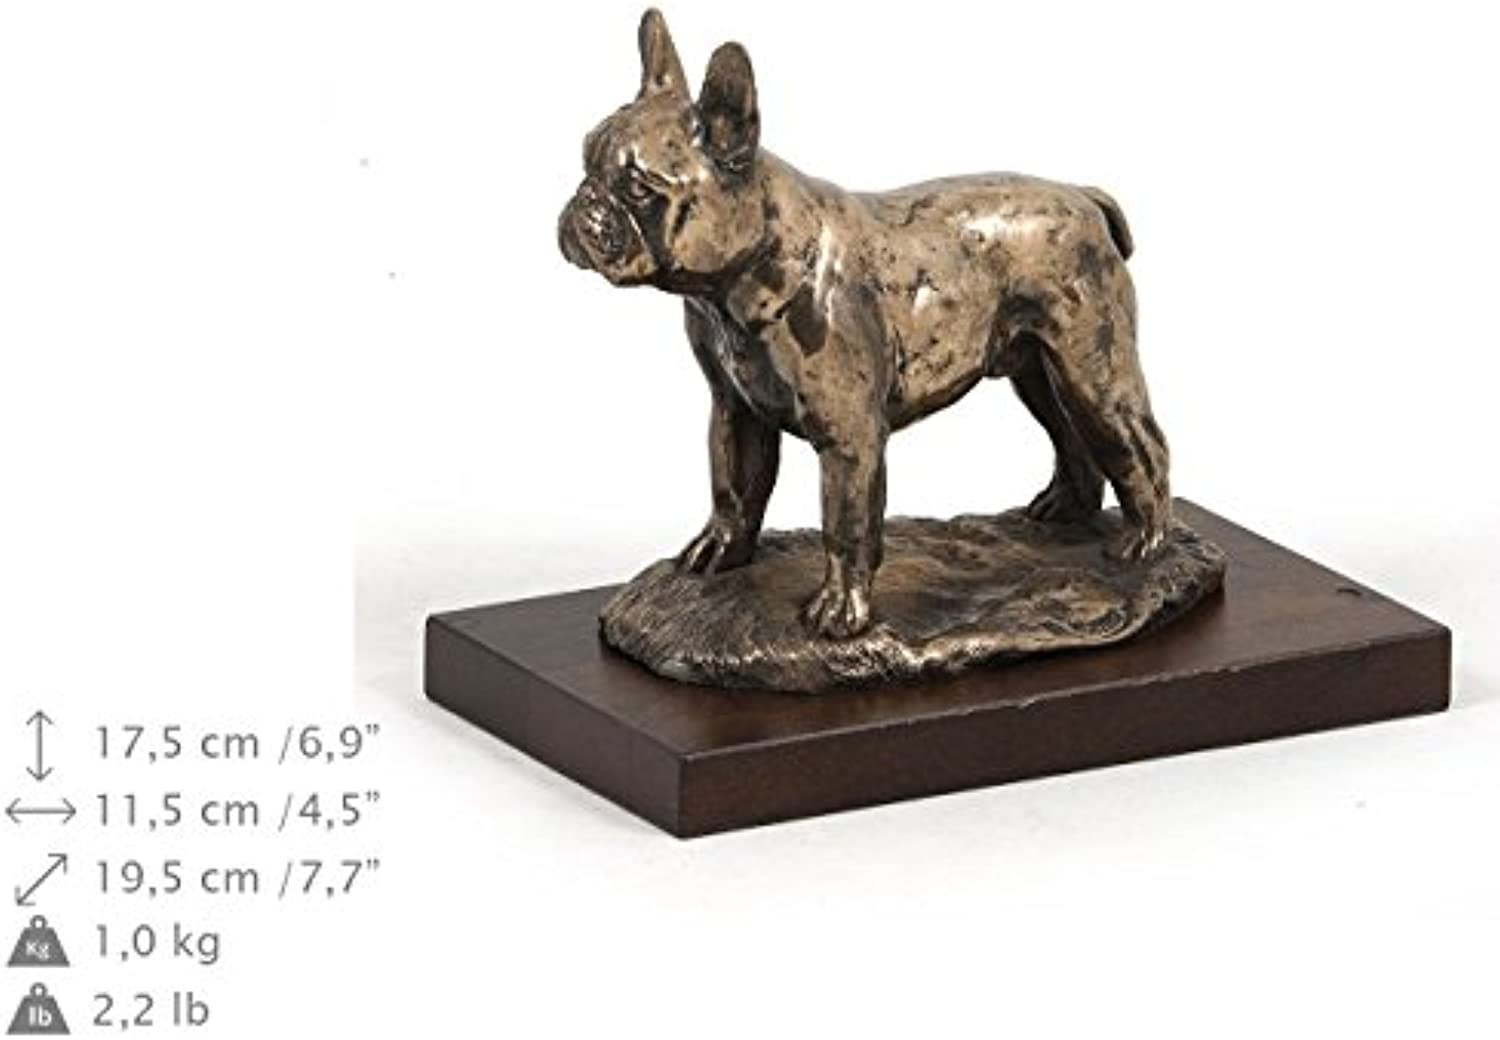 French Bulldog, Hund, Bronze, Statue, Holzsockel, liegend, Limitierte Edition, Art Dog